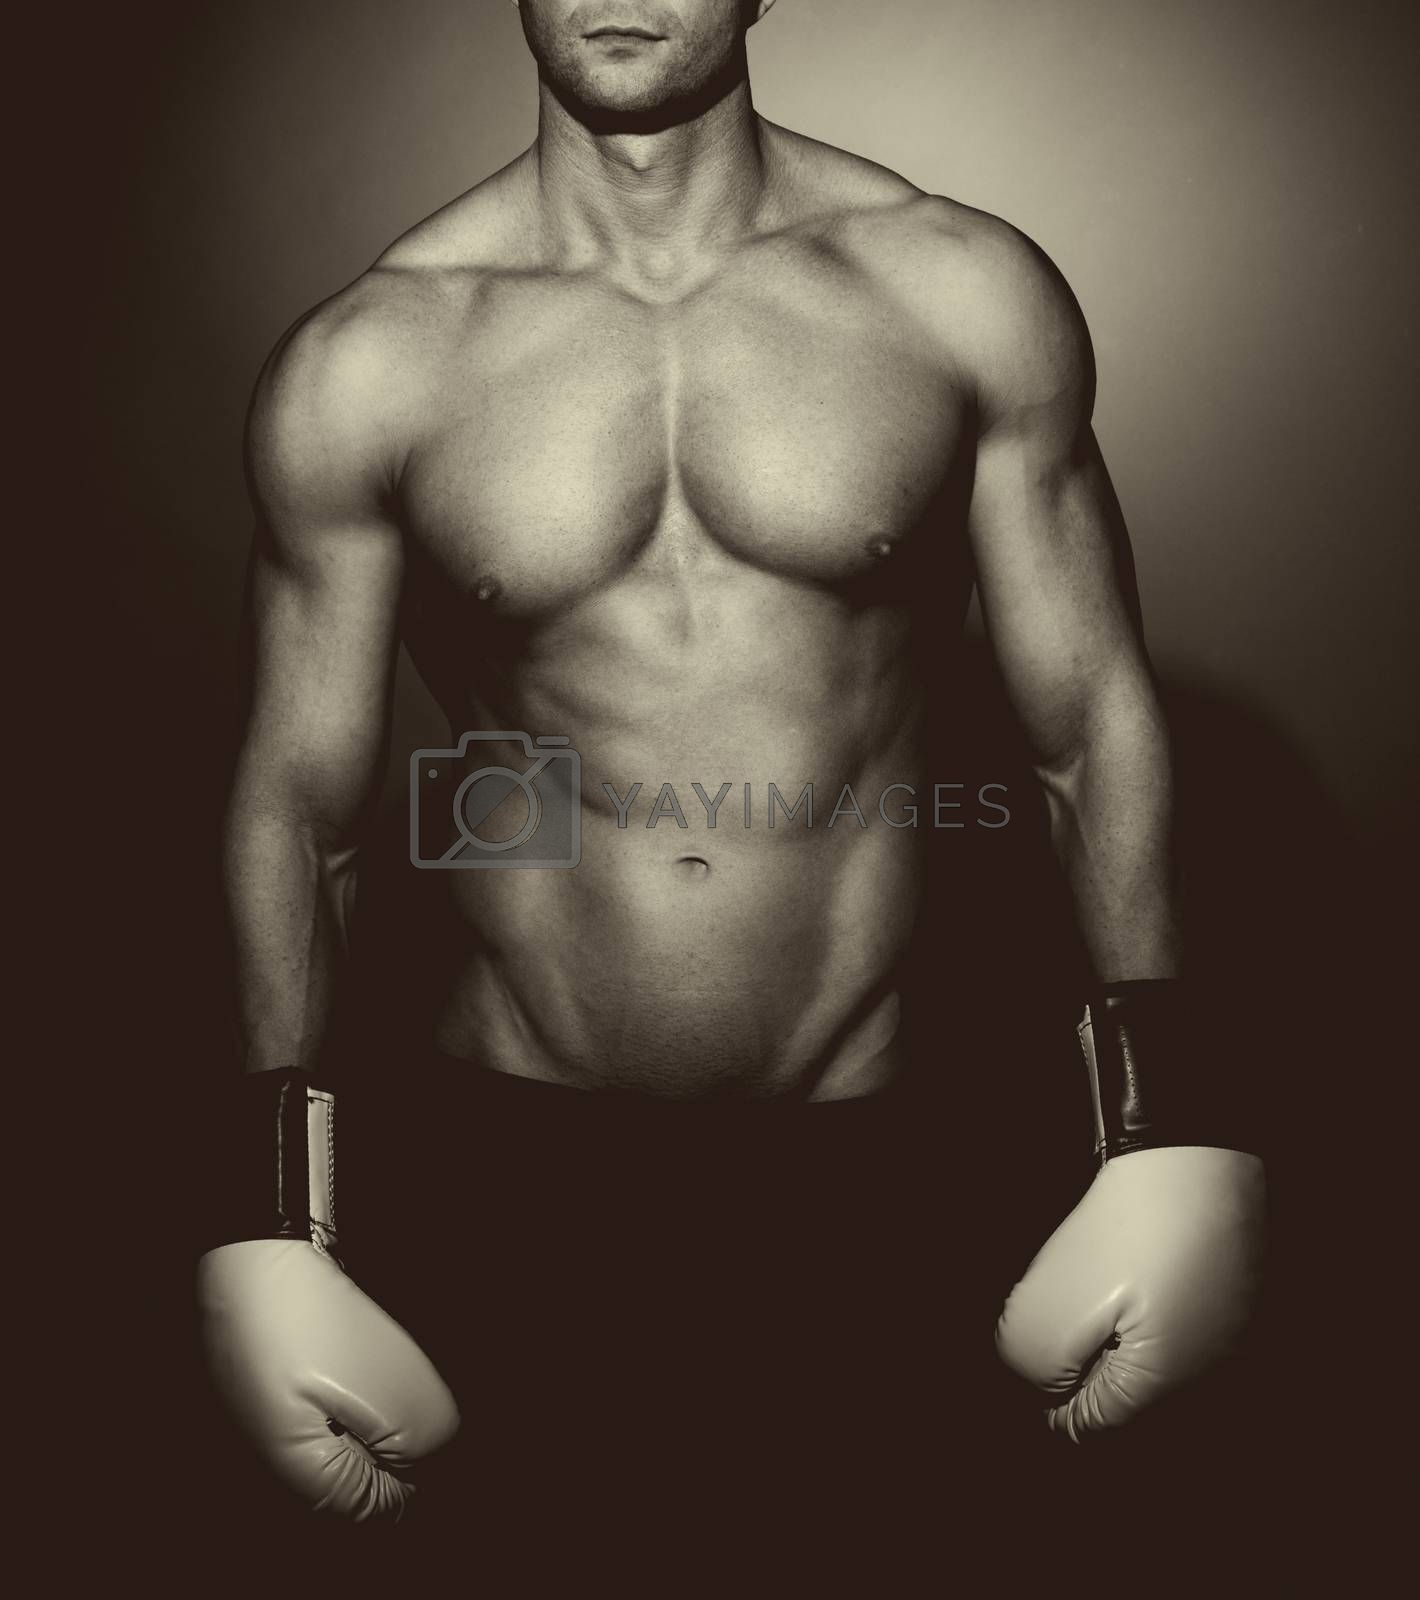 Boxer posing on dark background looking at camera.